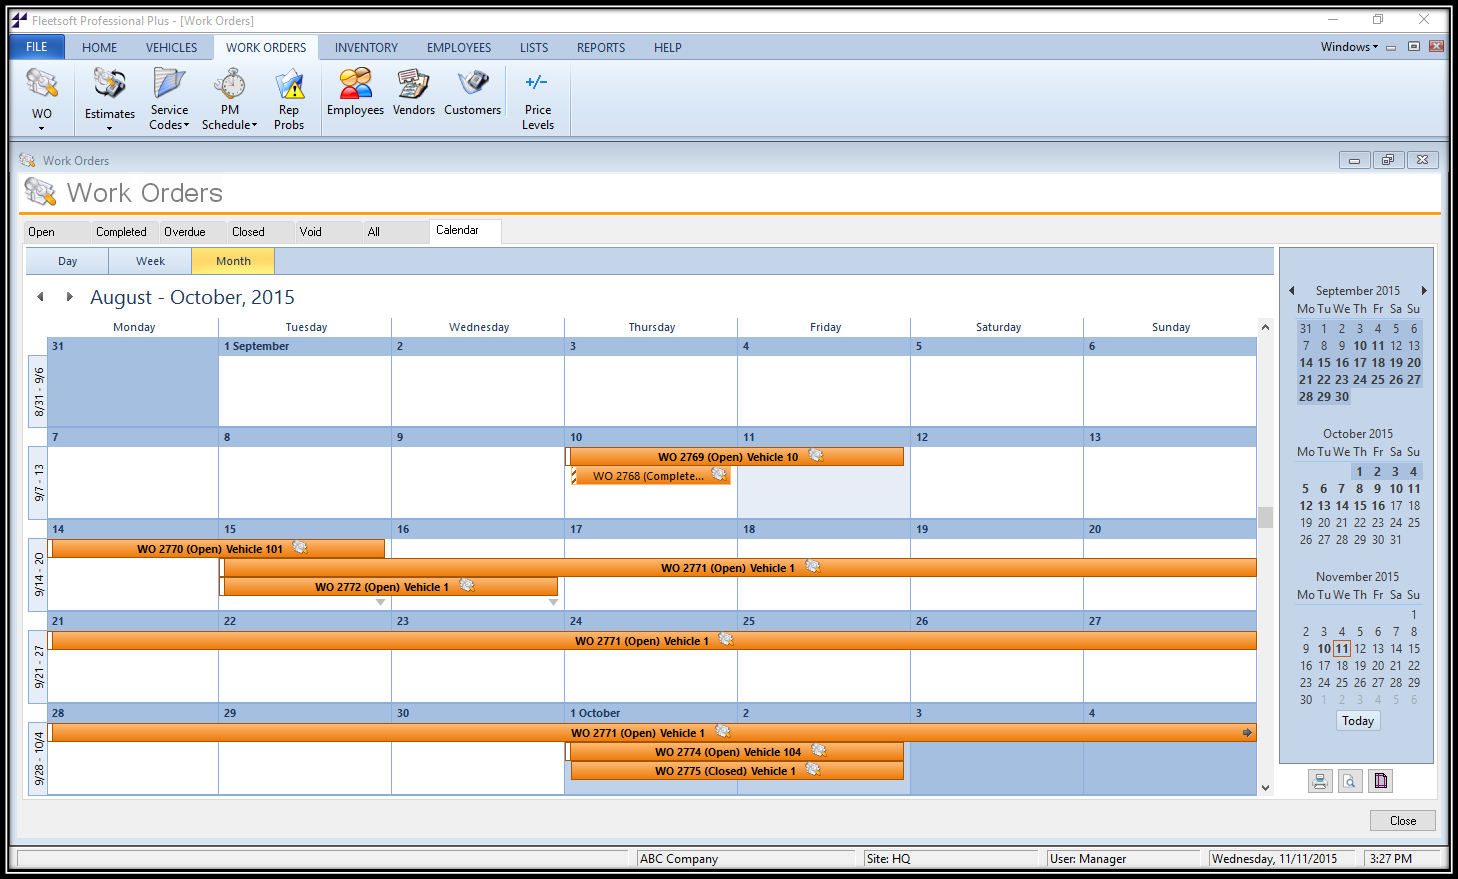 Fleetsoft Calendars